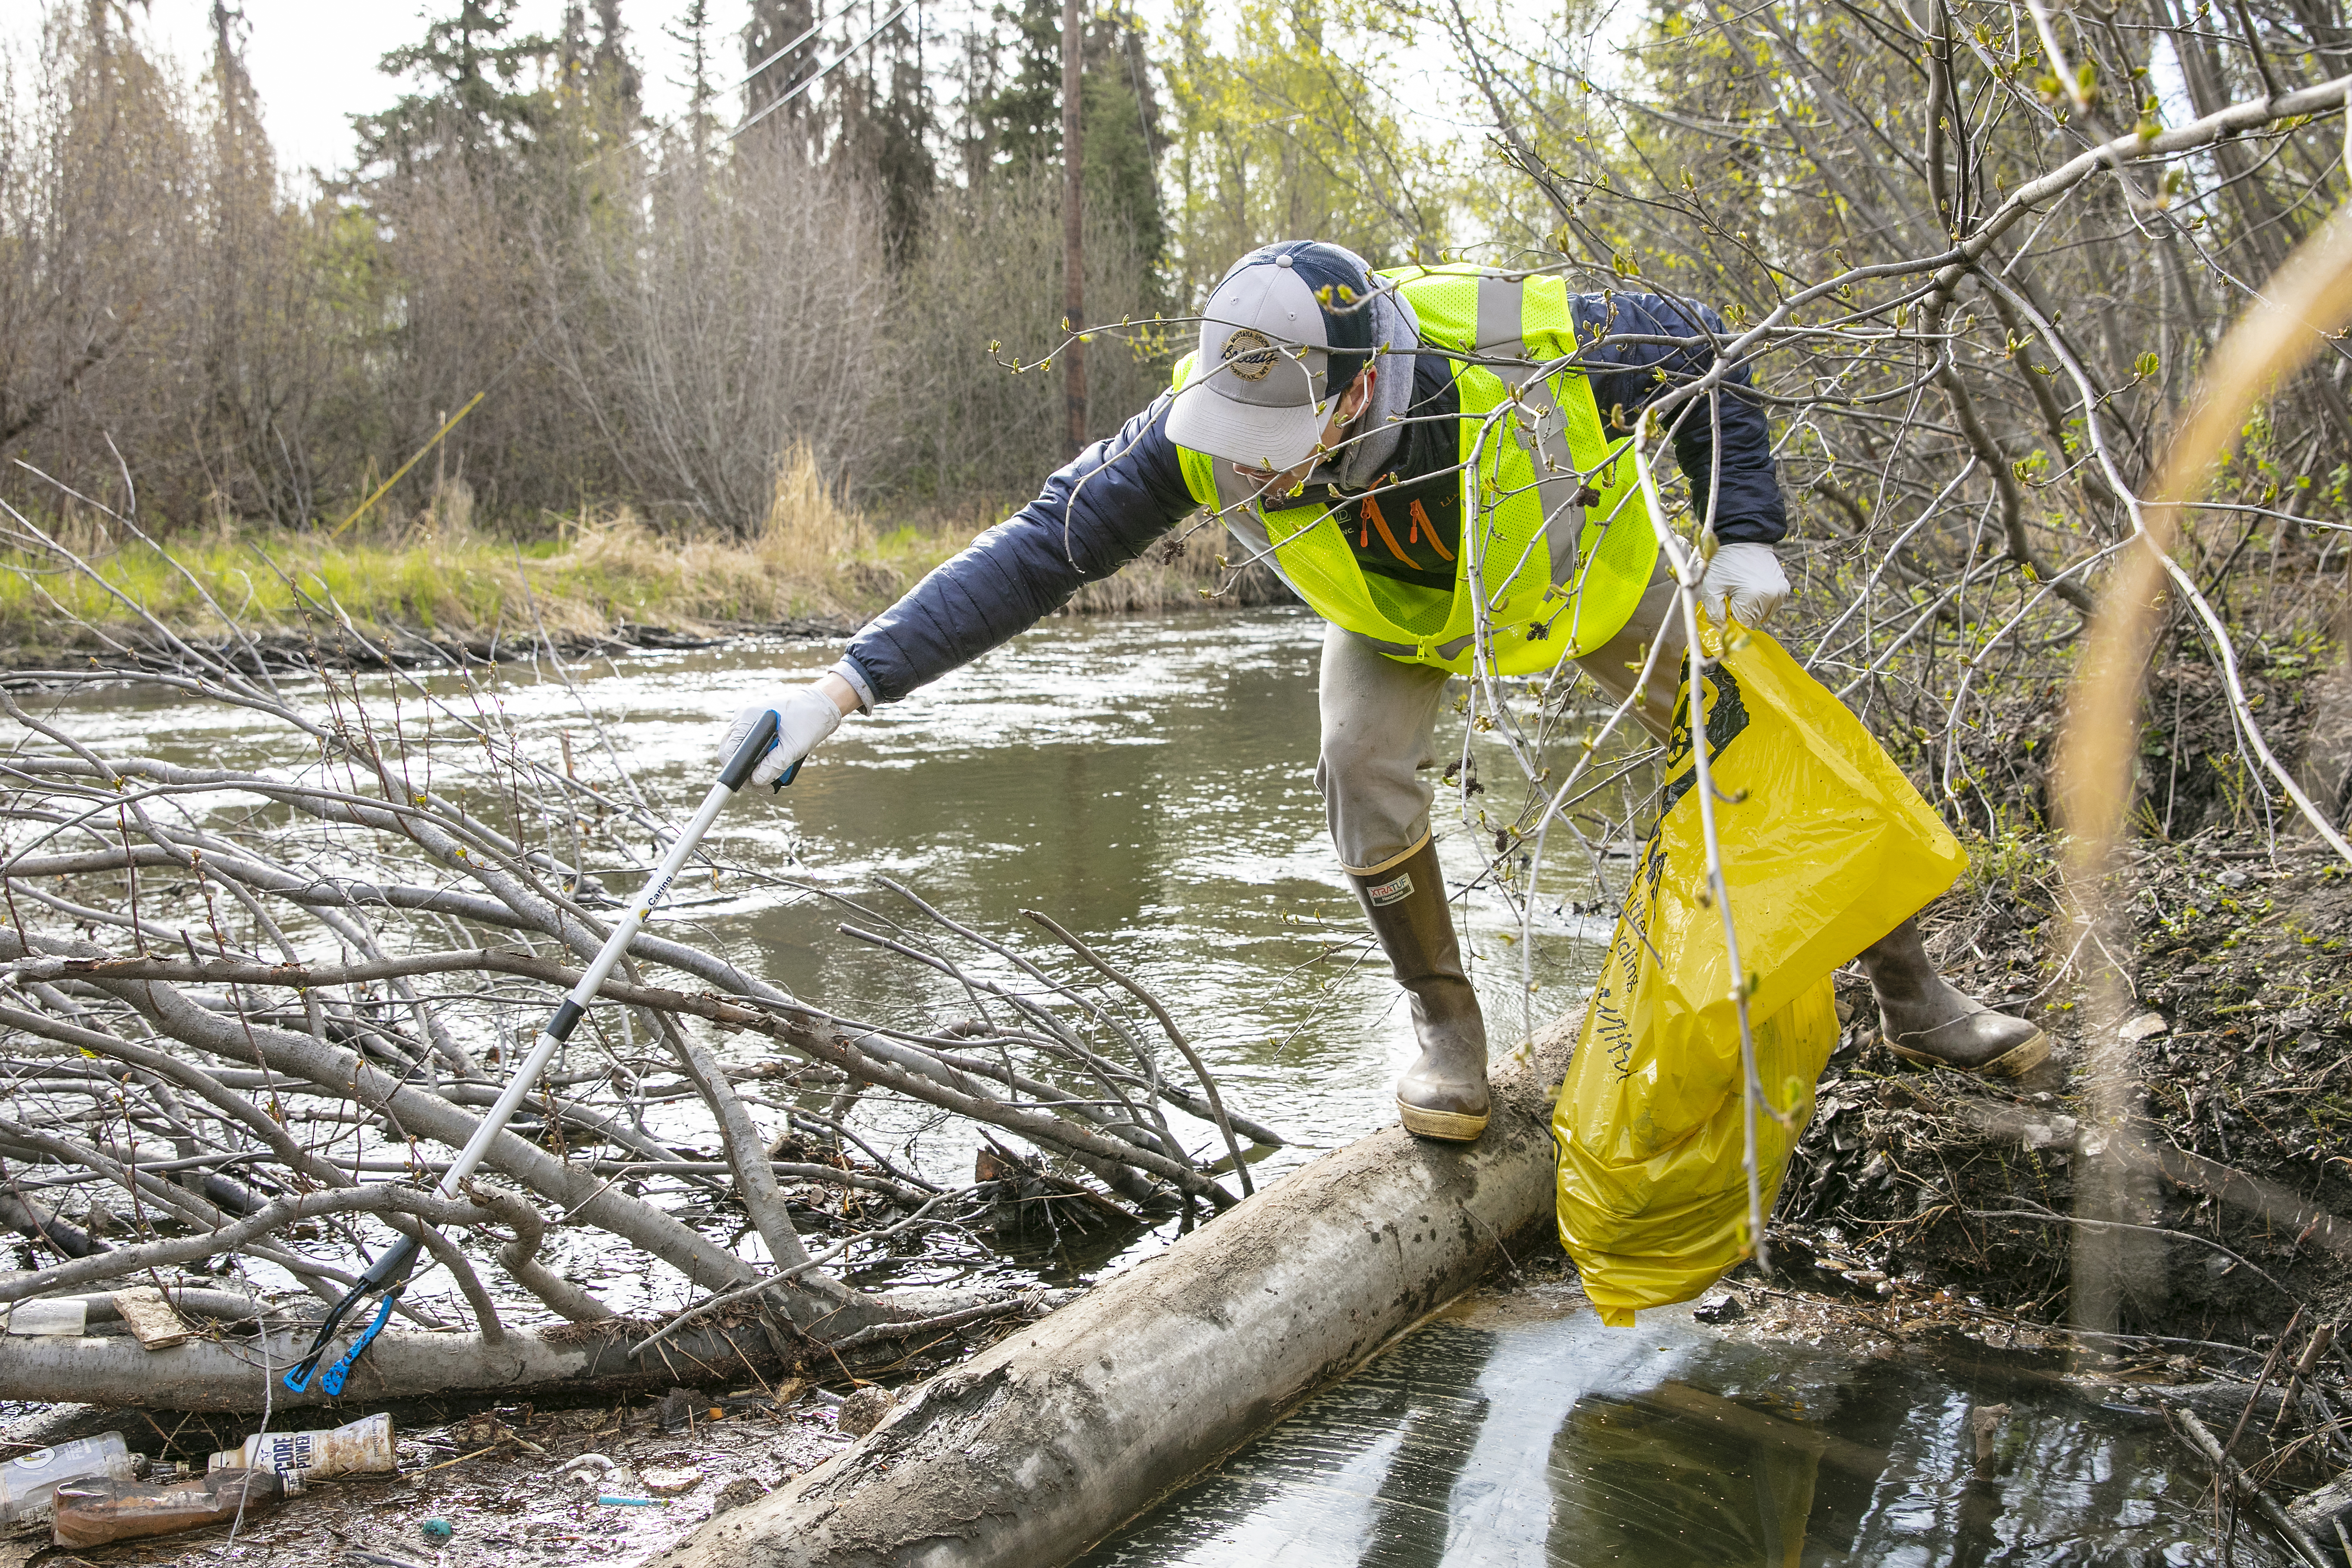 A volunteer wearing rubber boots and yellow safety vest holds a yellow trash bag while reaching with a grabber to pick up trash in Campbell Creek.